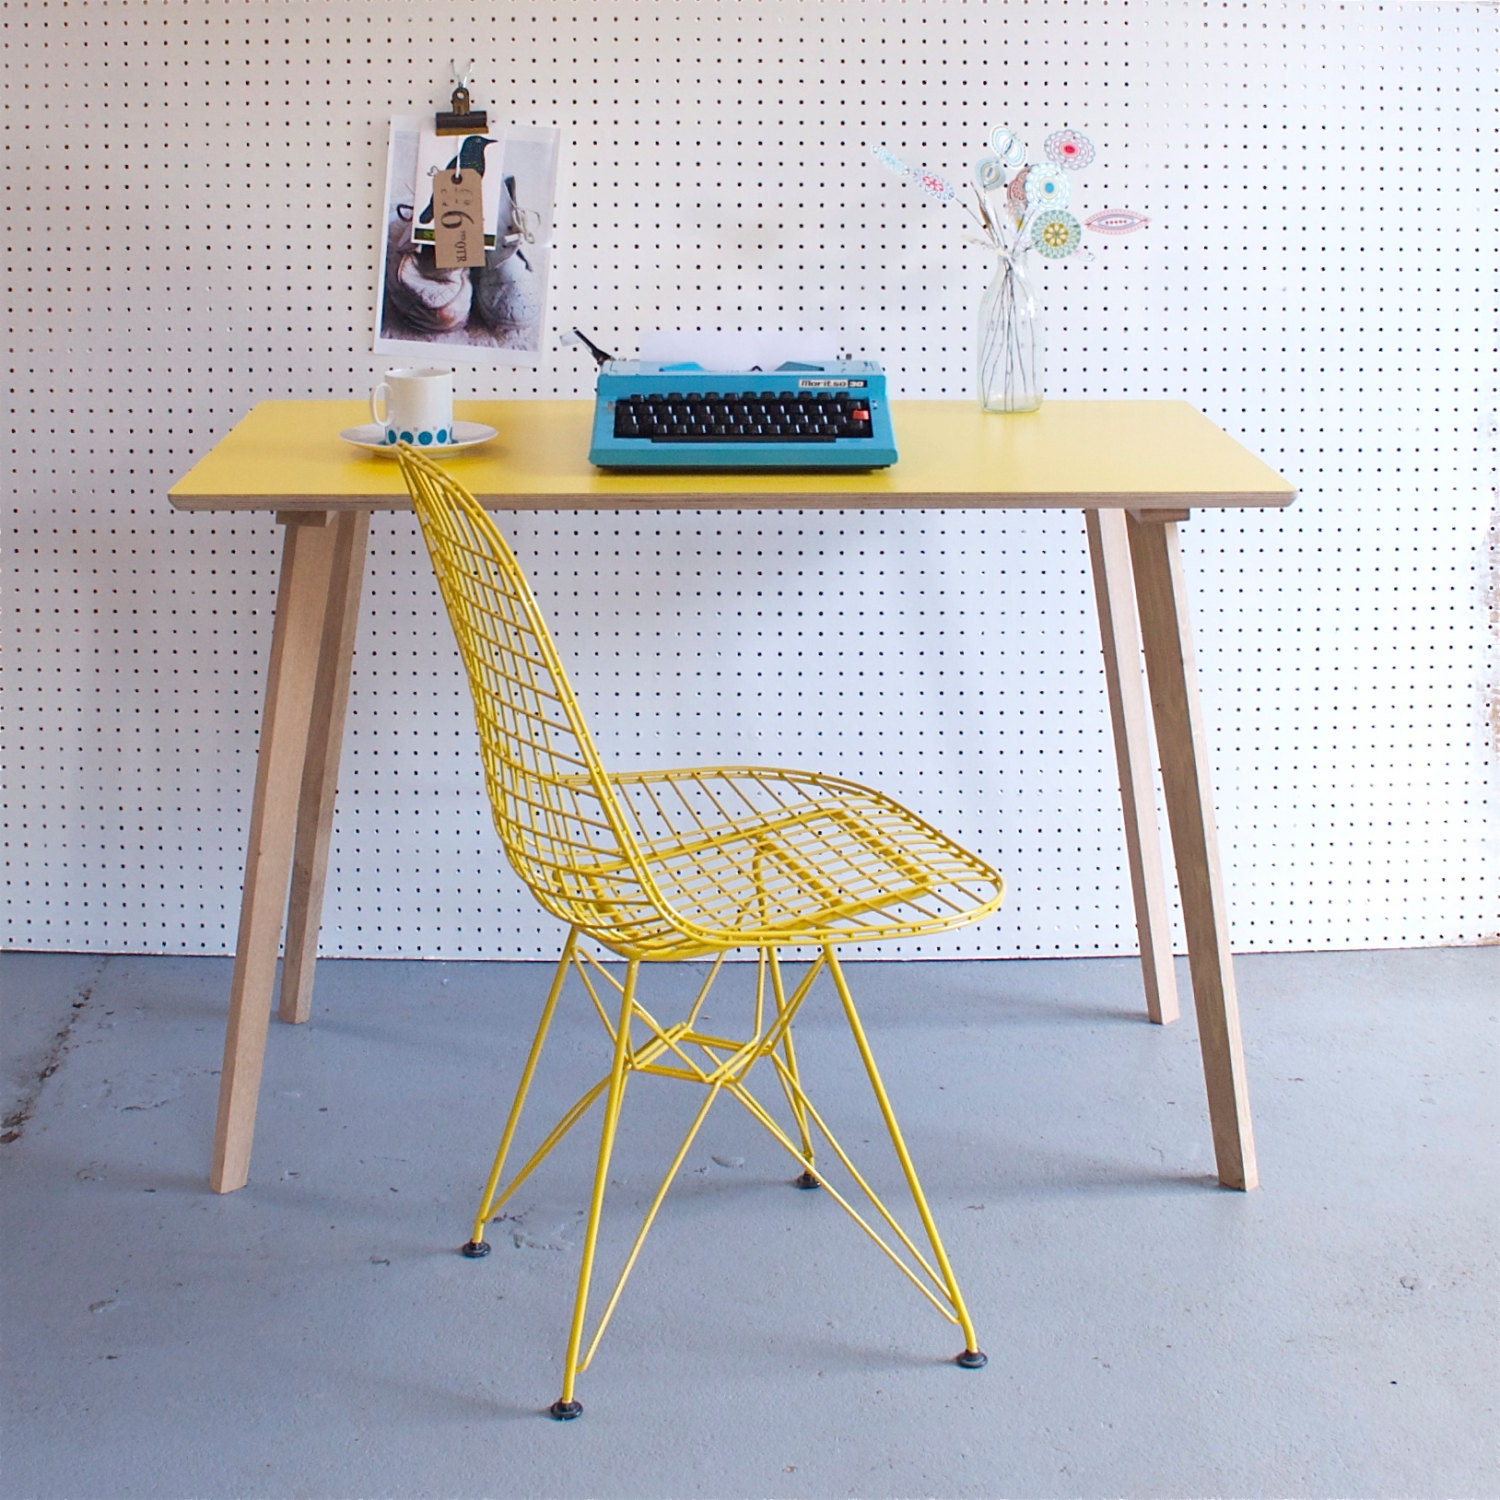 Perky formica table desk in yellow etsy finds for Table formica